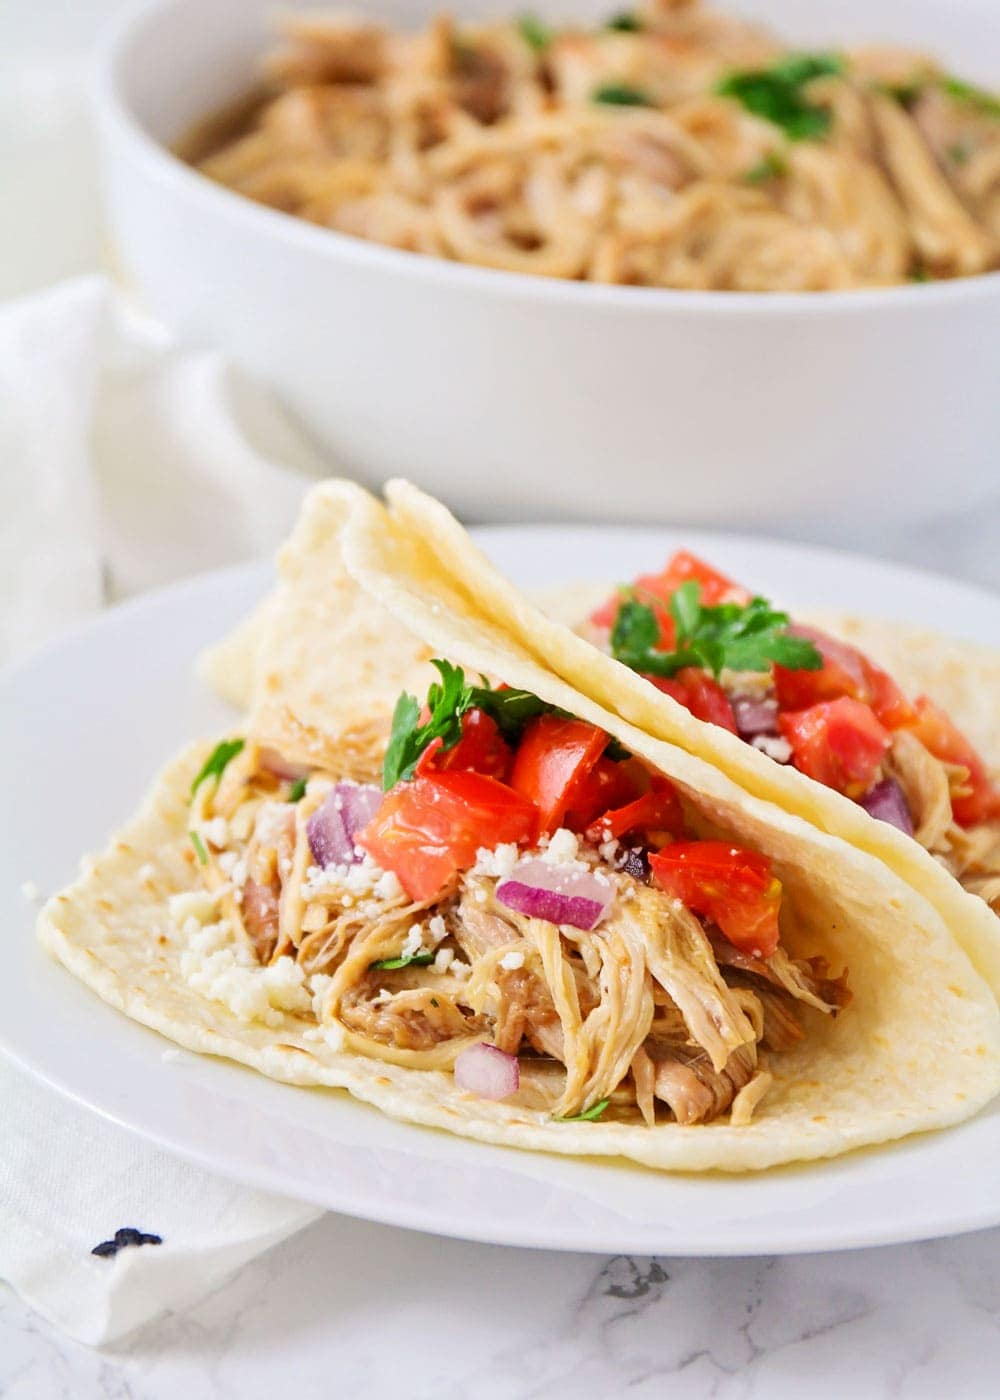 Close up of pulled pork tacos with toppings